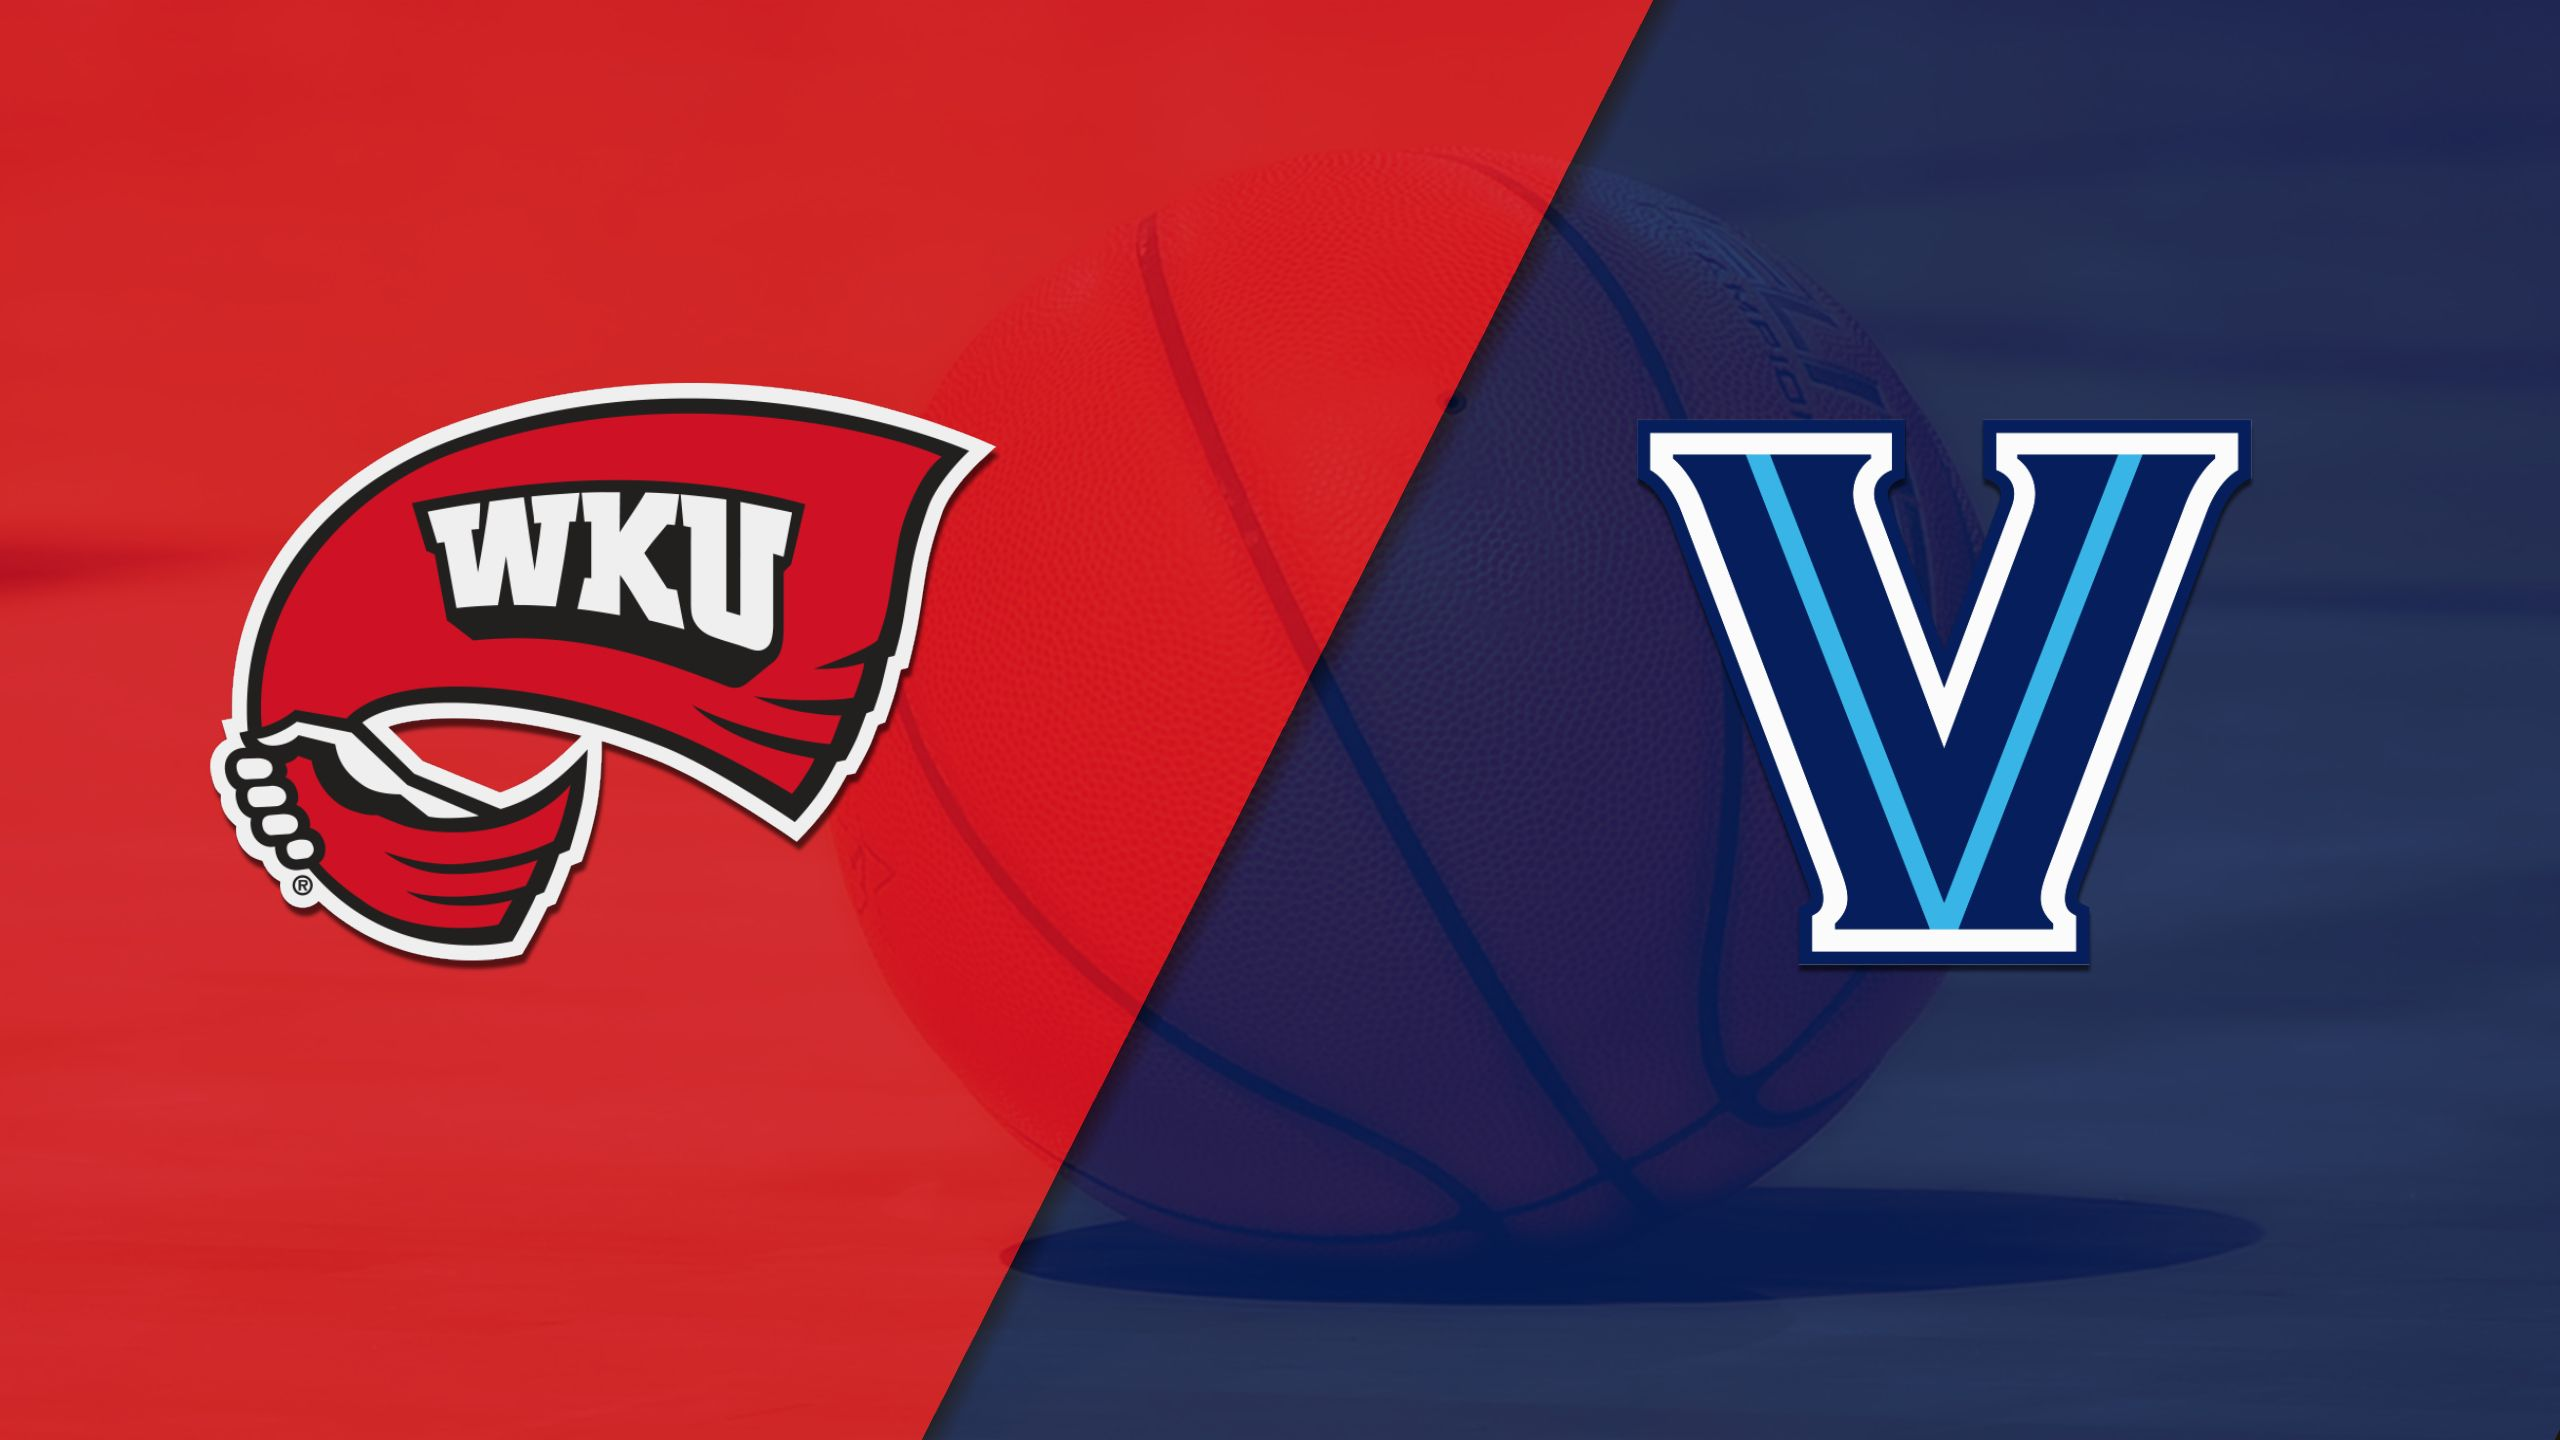 Western Kentucky vs. #5 Villanova (Quarterfinal #2) (Battle 4 Atlantis)